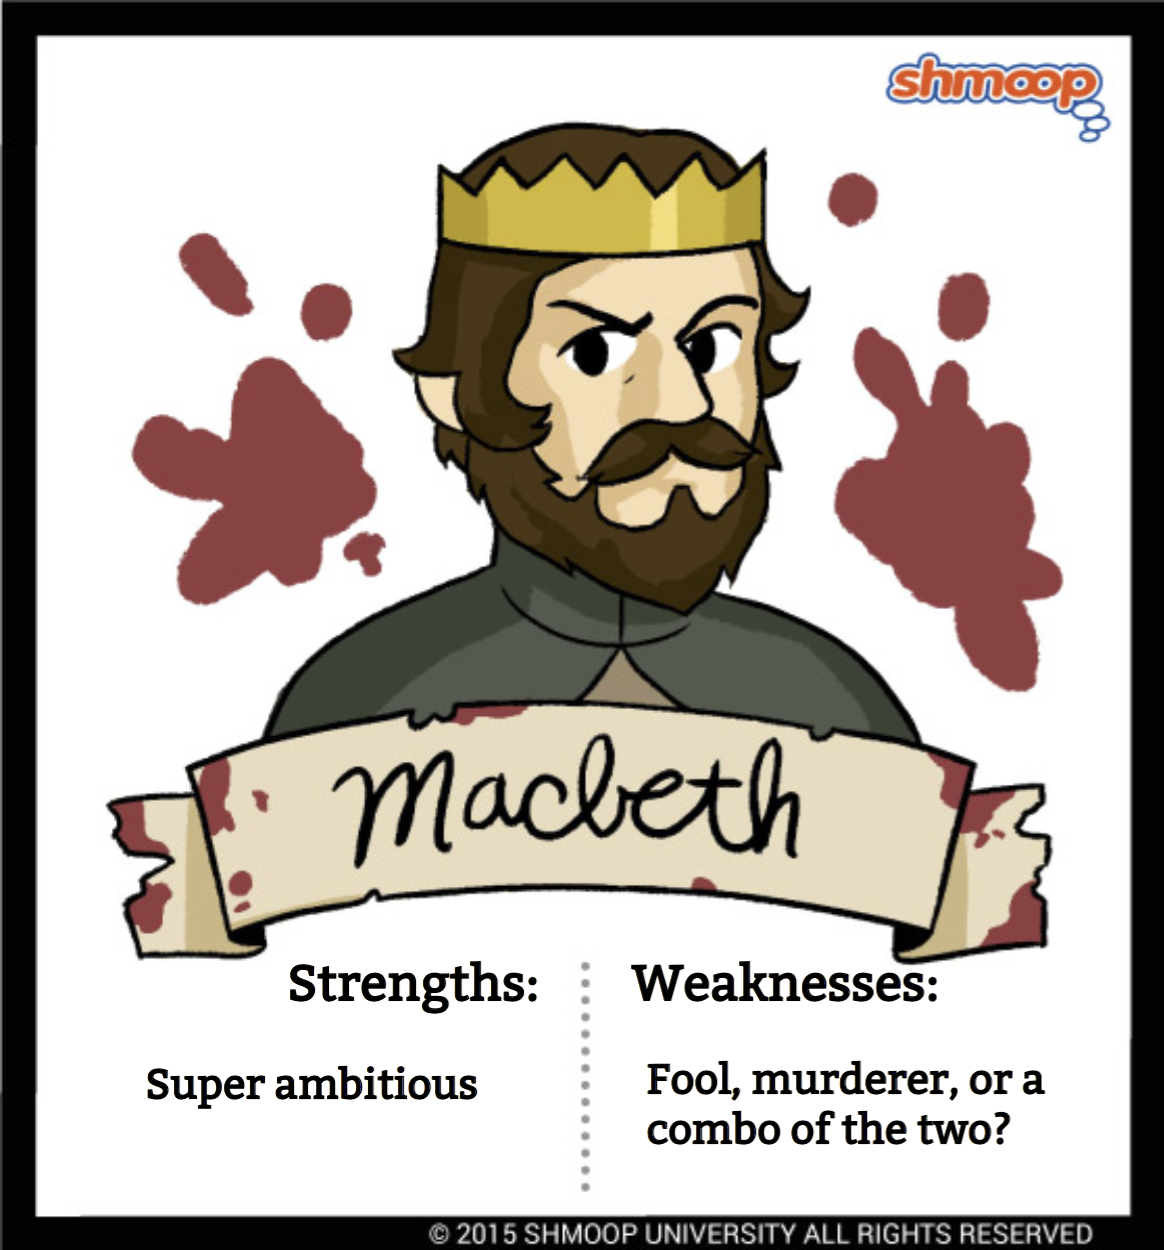 what motivates macbeth to succeed in life in shakespeares play macbeth The protagonist of this tragedy written by william shakespeare, macbeth belongs  to  macbeth initially resists the plot to kill the king out fear of punishment both in  life and beyond  this eventually drives her to madness and suicide  love with  macbeth, as if her criminal ambition is truly driven by a desire for his success.